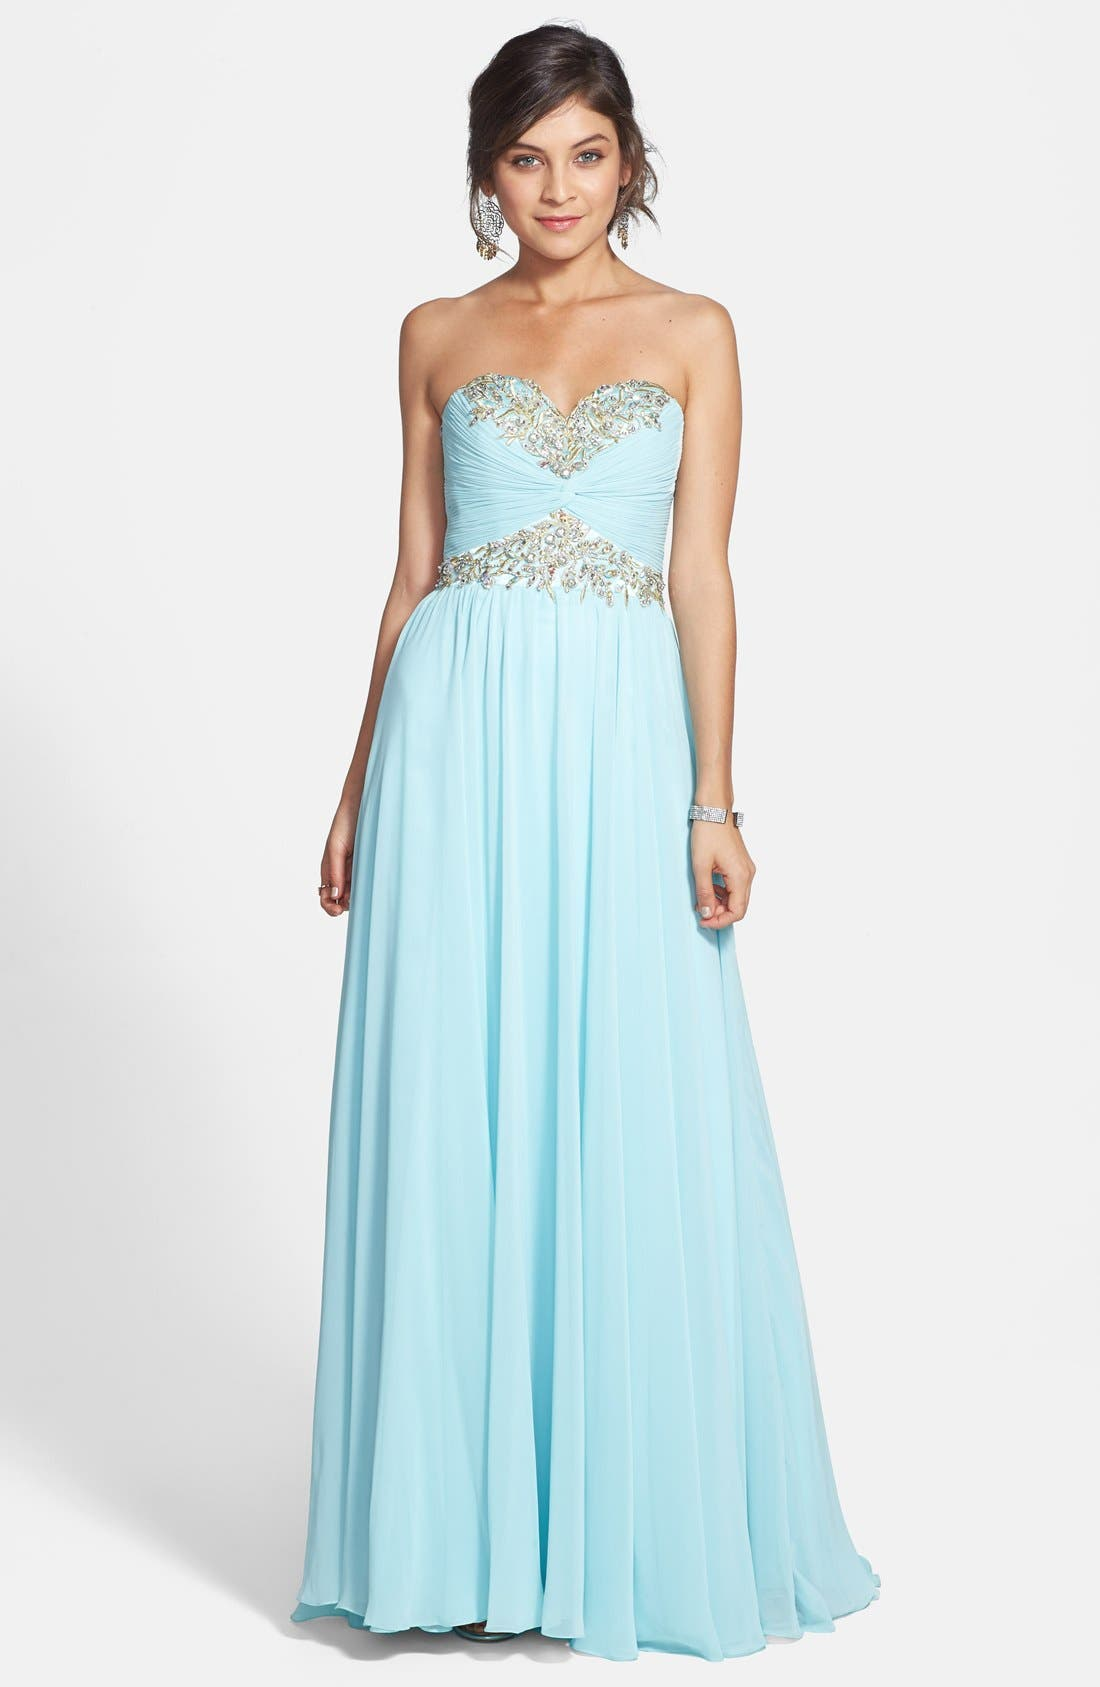 Alternate Image 1 Selected - Sherri Hill Embellished Strapless Chiffon Gown